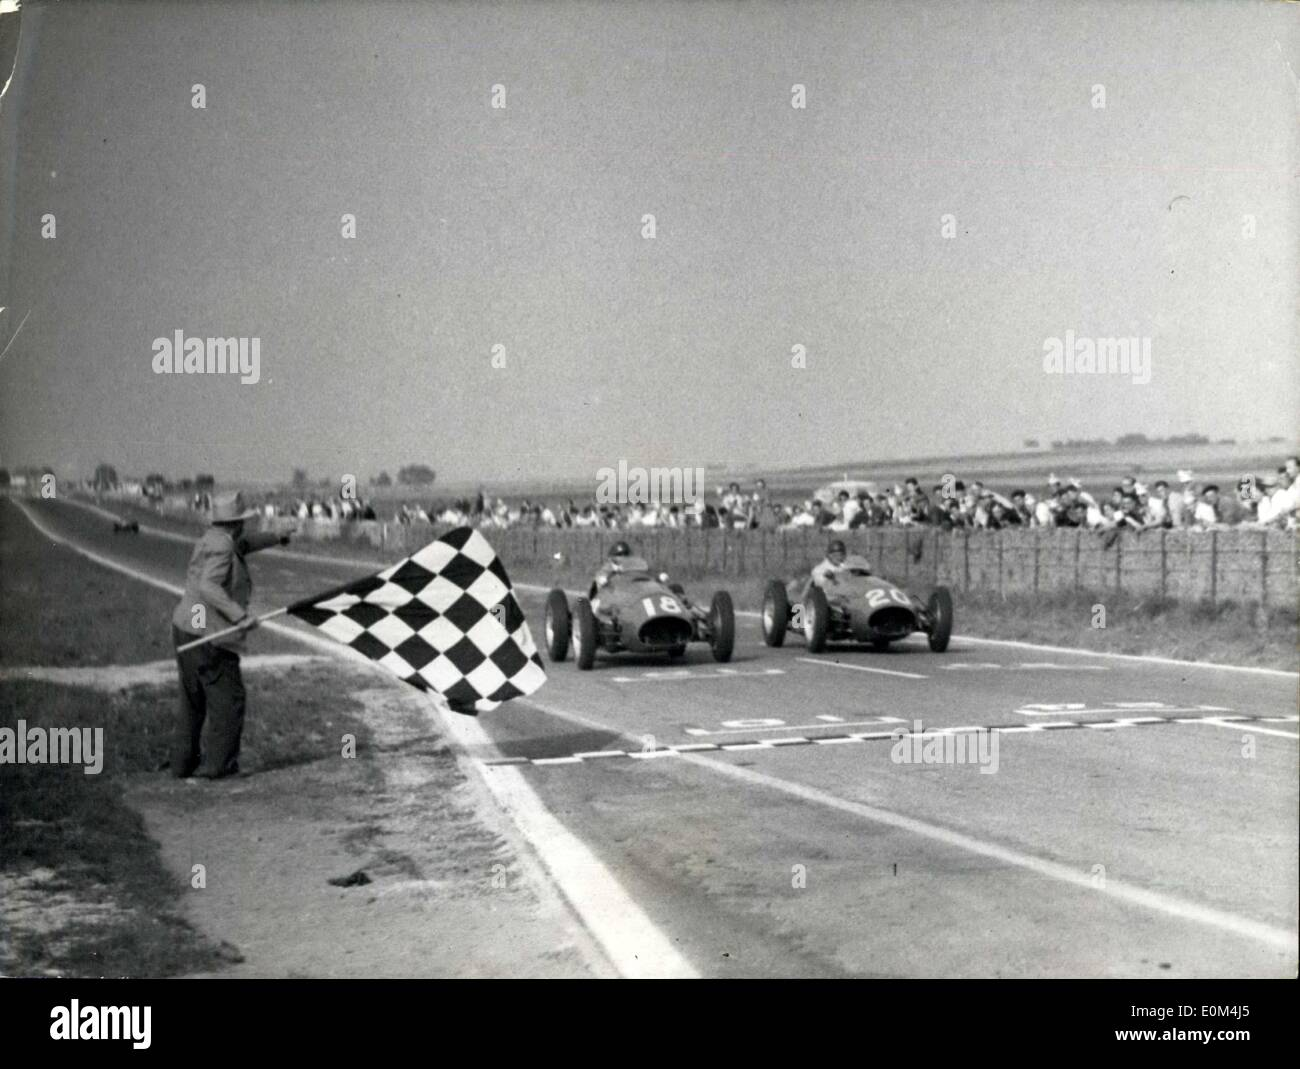 Jul. 06, 1953 - The Englishman Hawthorn wins the big prize of the A.C.F.: Fangio 2nd -- Gonzales 3rd. The arrival of Fangio (N I8) driving a Maserati I and of Gonzales on Maserati II. - Stock Image